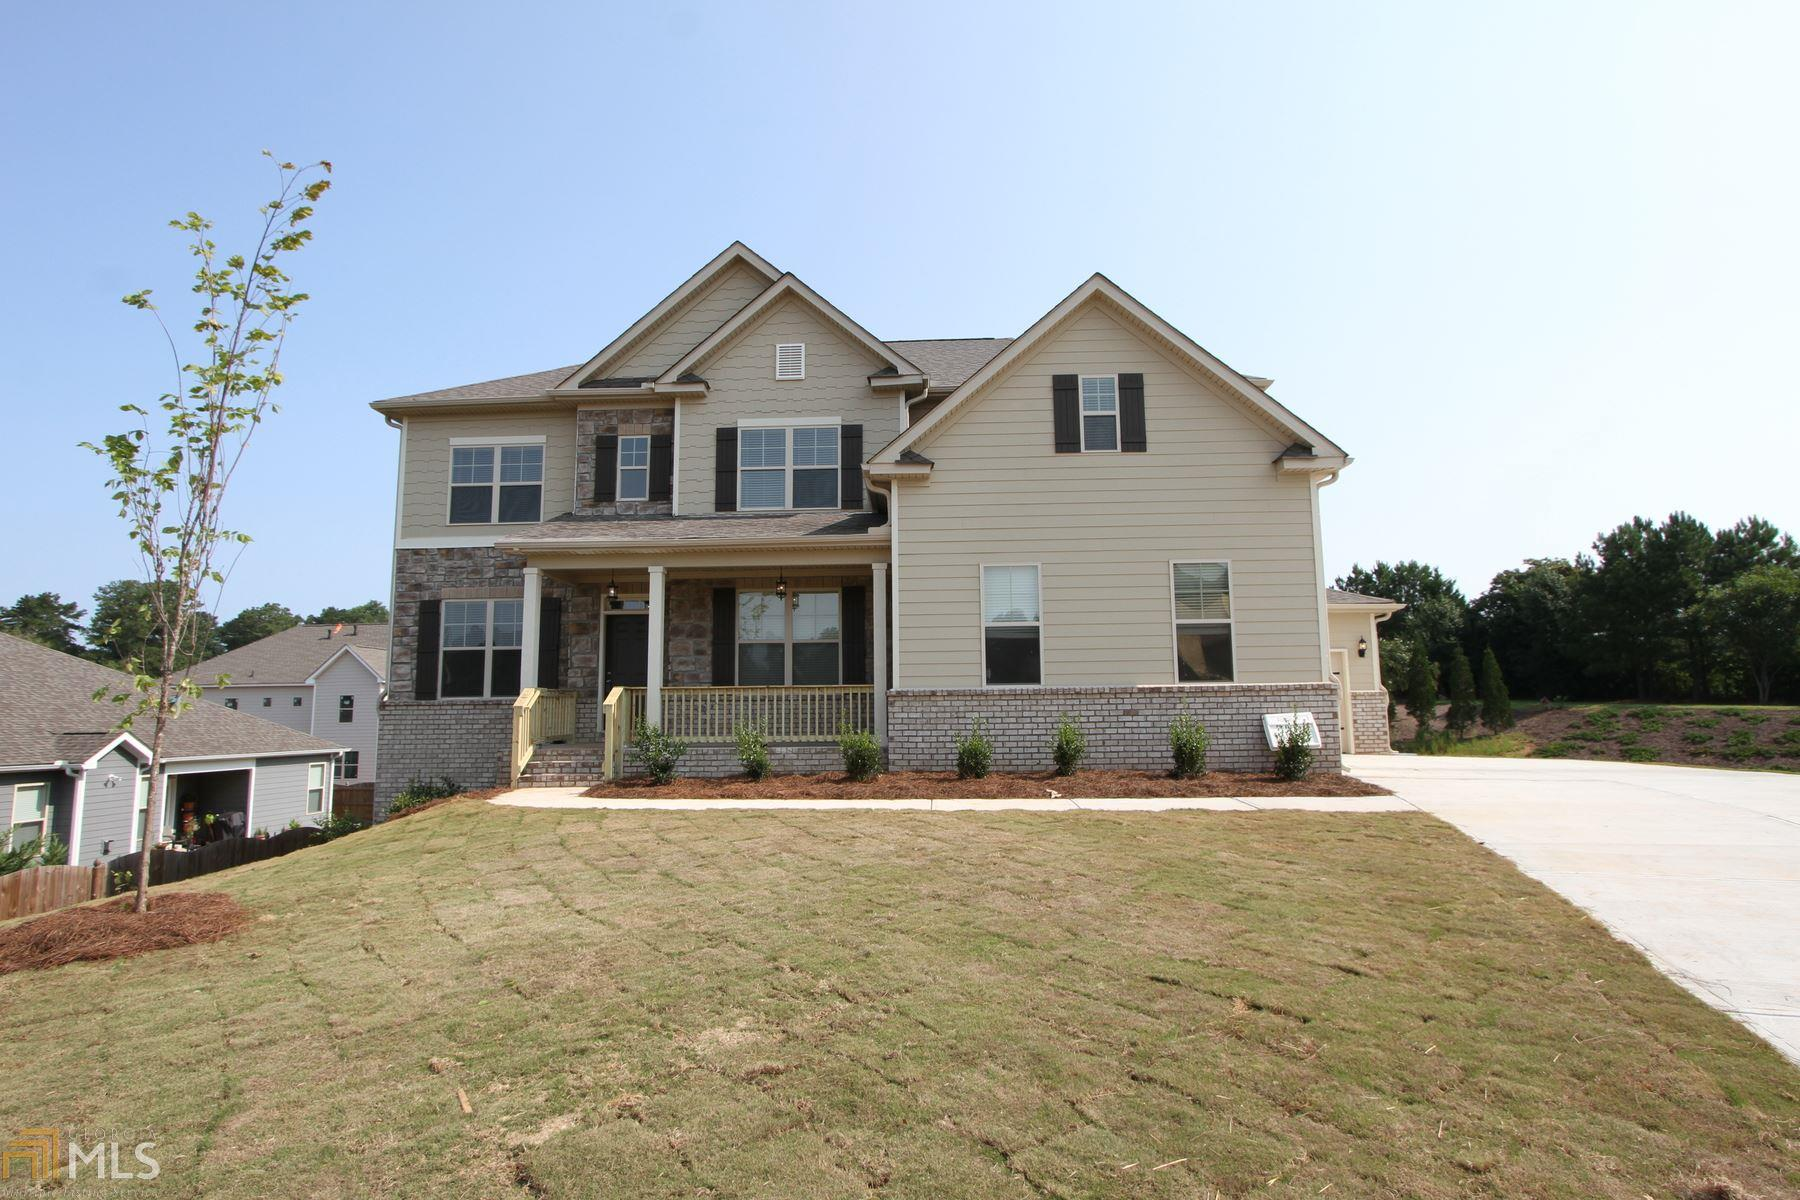 5025 Odum Lake Trl, Cumming, GA 30040